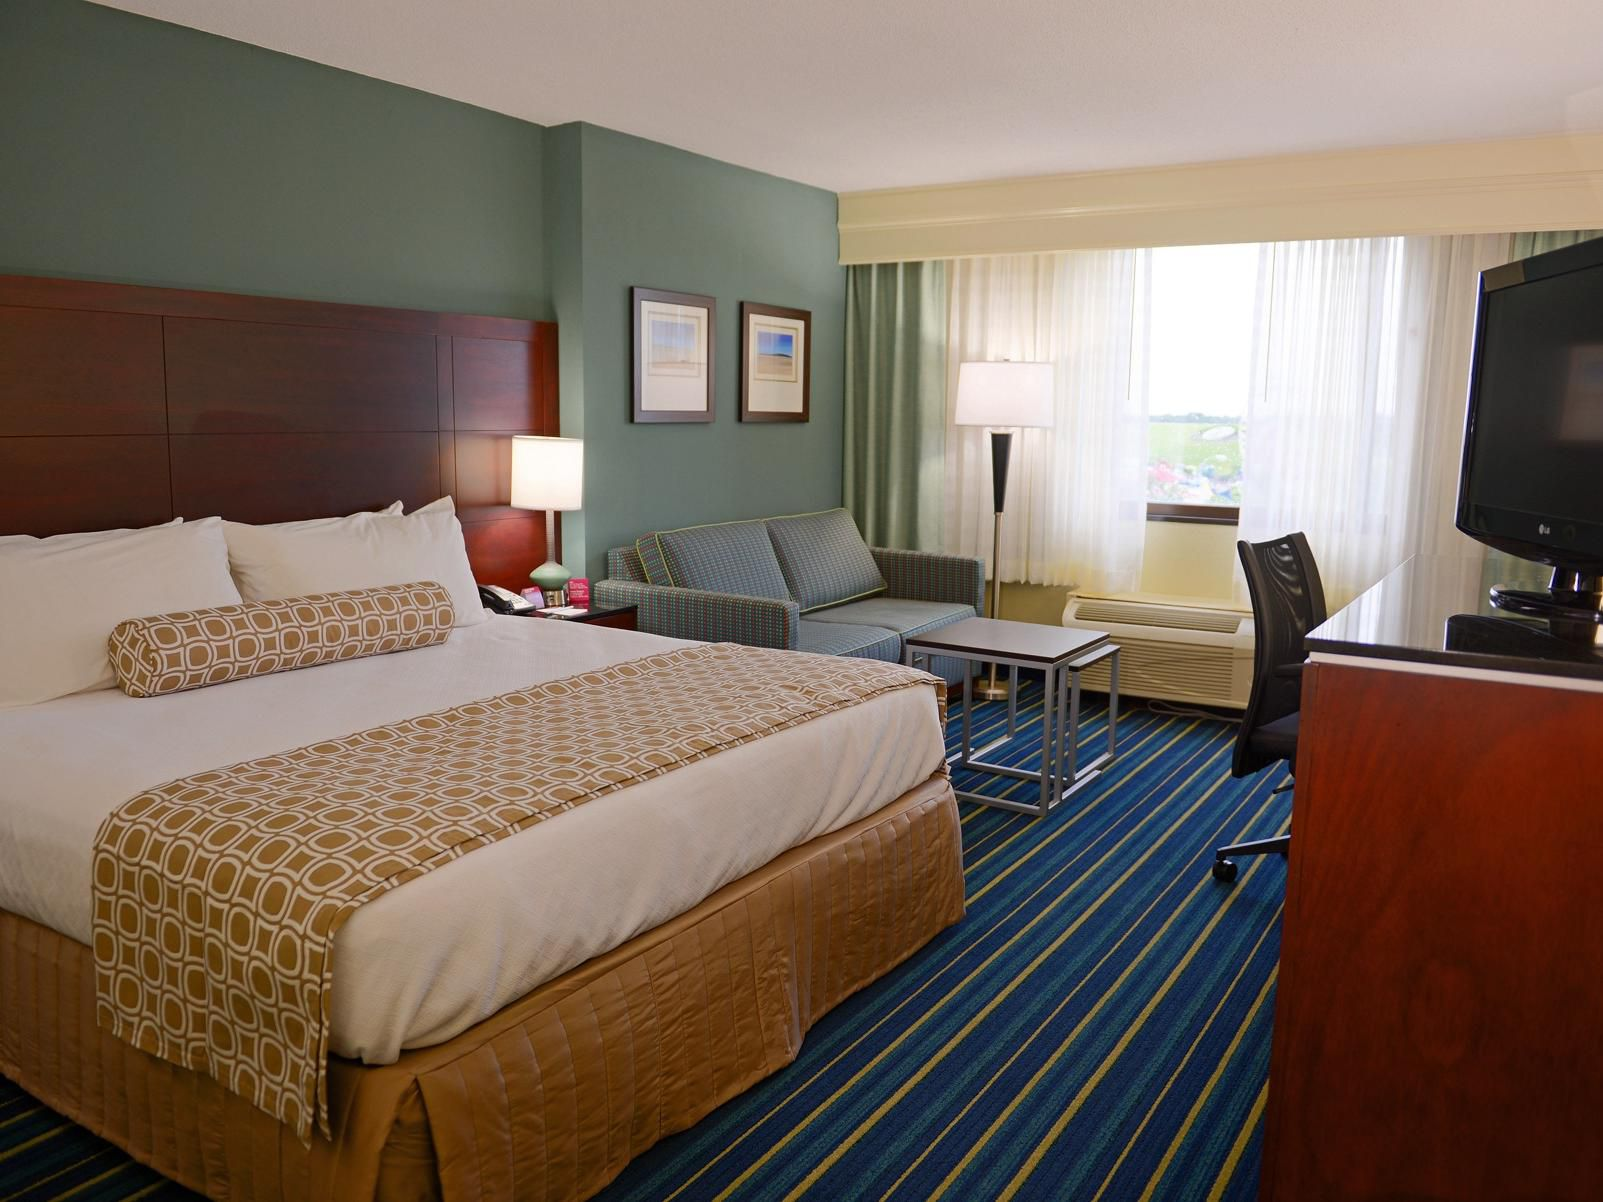 Crowne Plaza Virginia Beach Town Center - Virginia Beach, Virginia